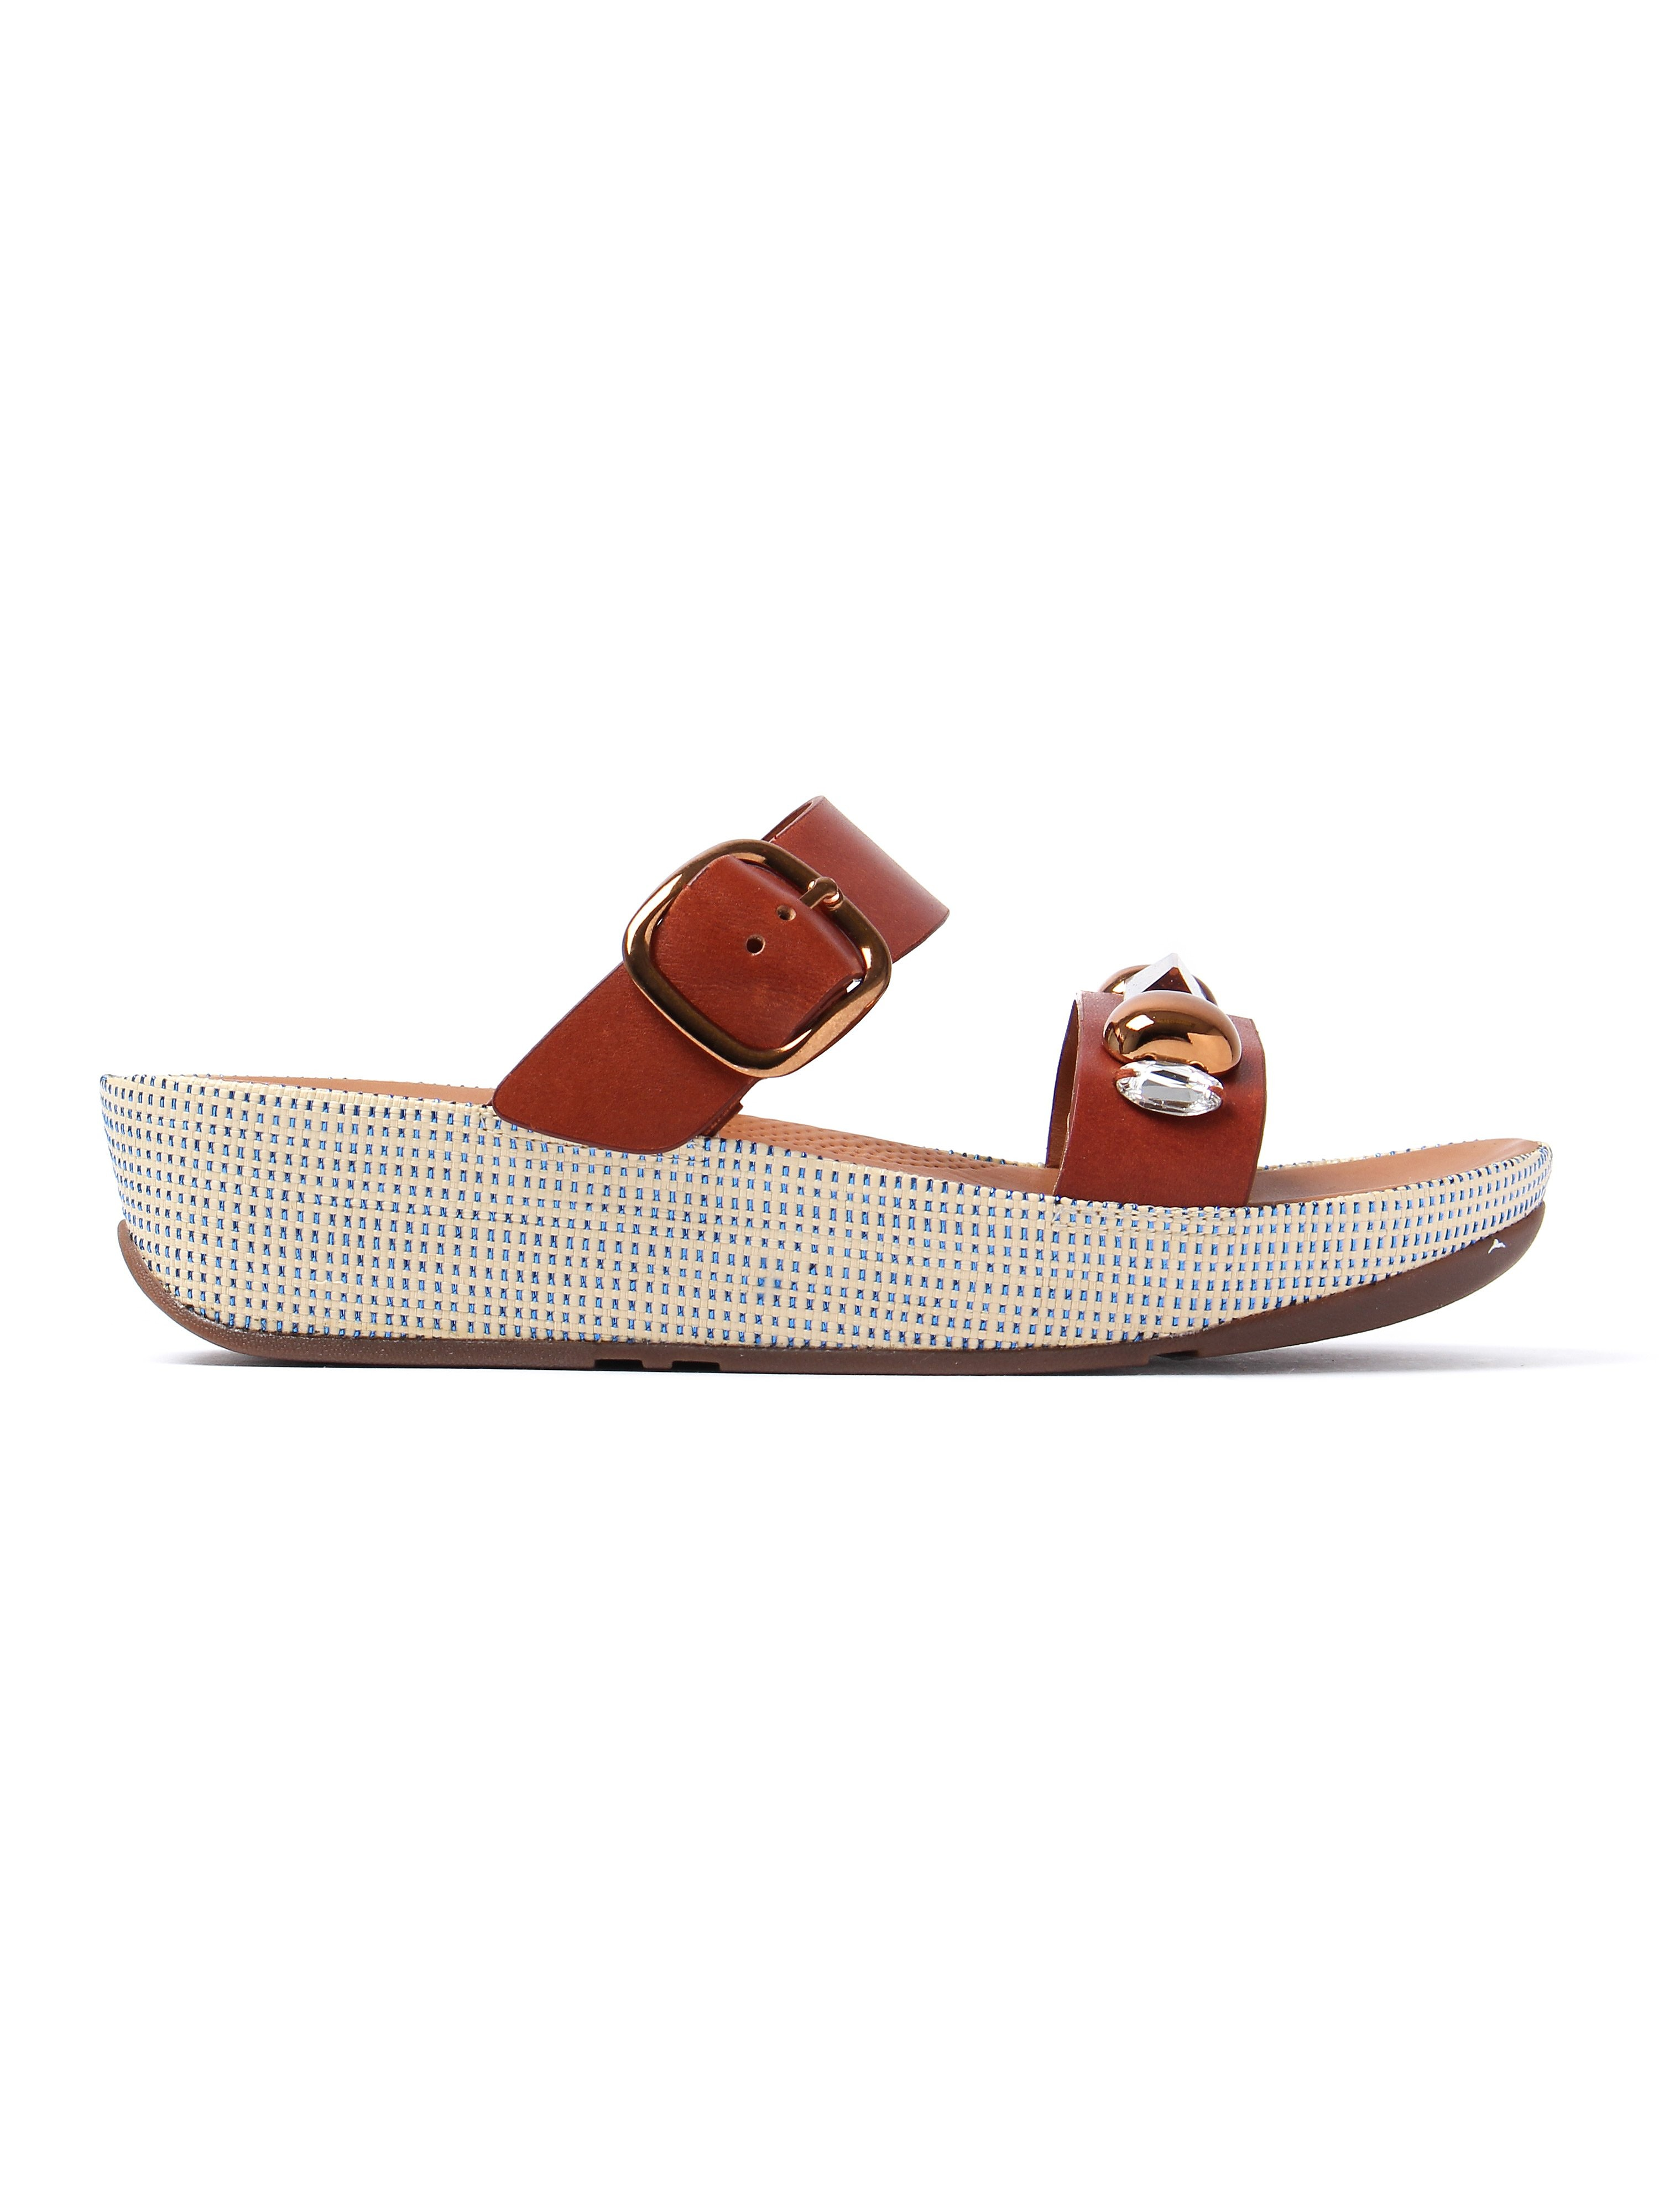 FitFlop Women's Jeweley Slide Sandals - Dark Tan